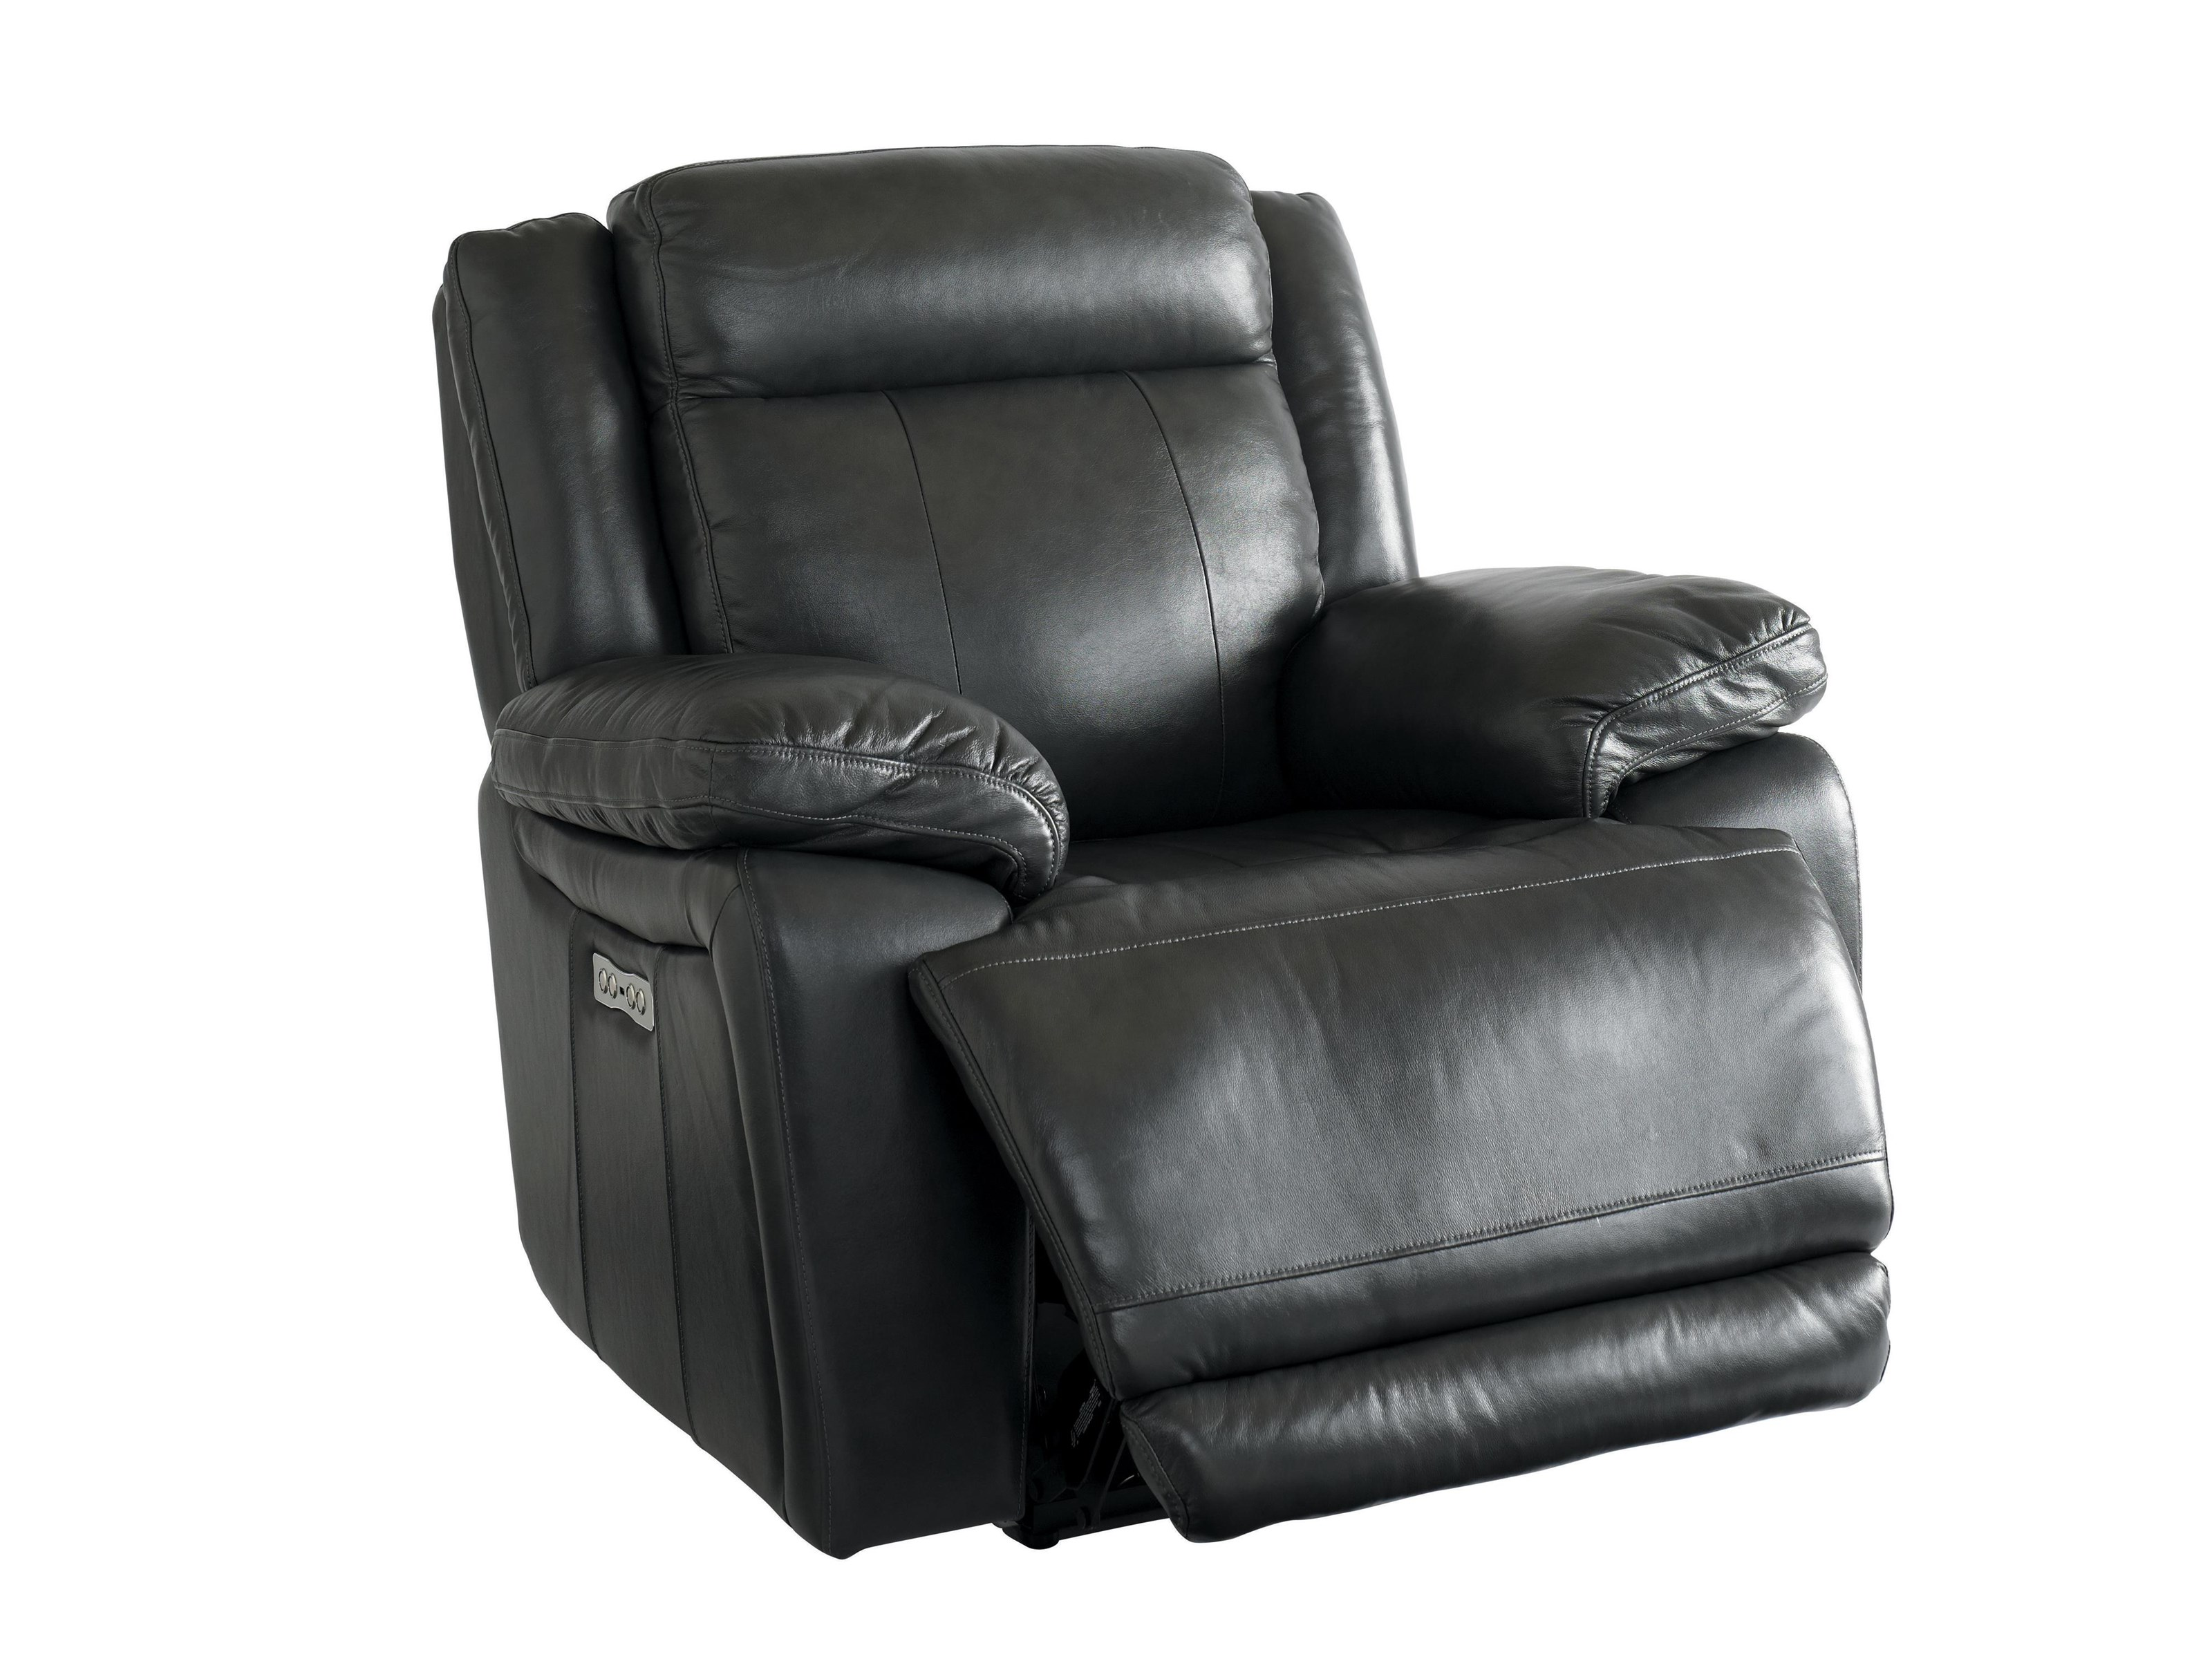 Graphite Leather Power Recliner with Power Head & Footrest